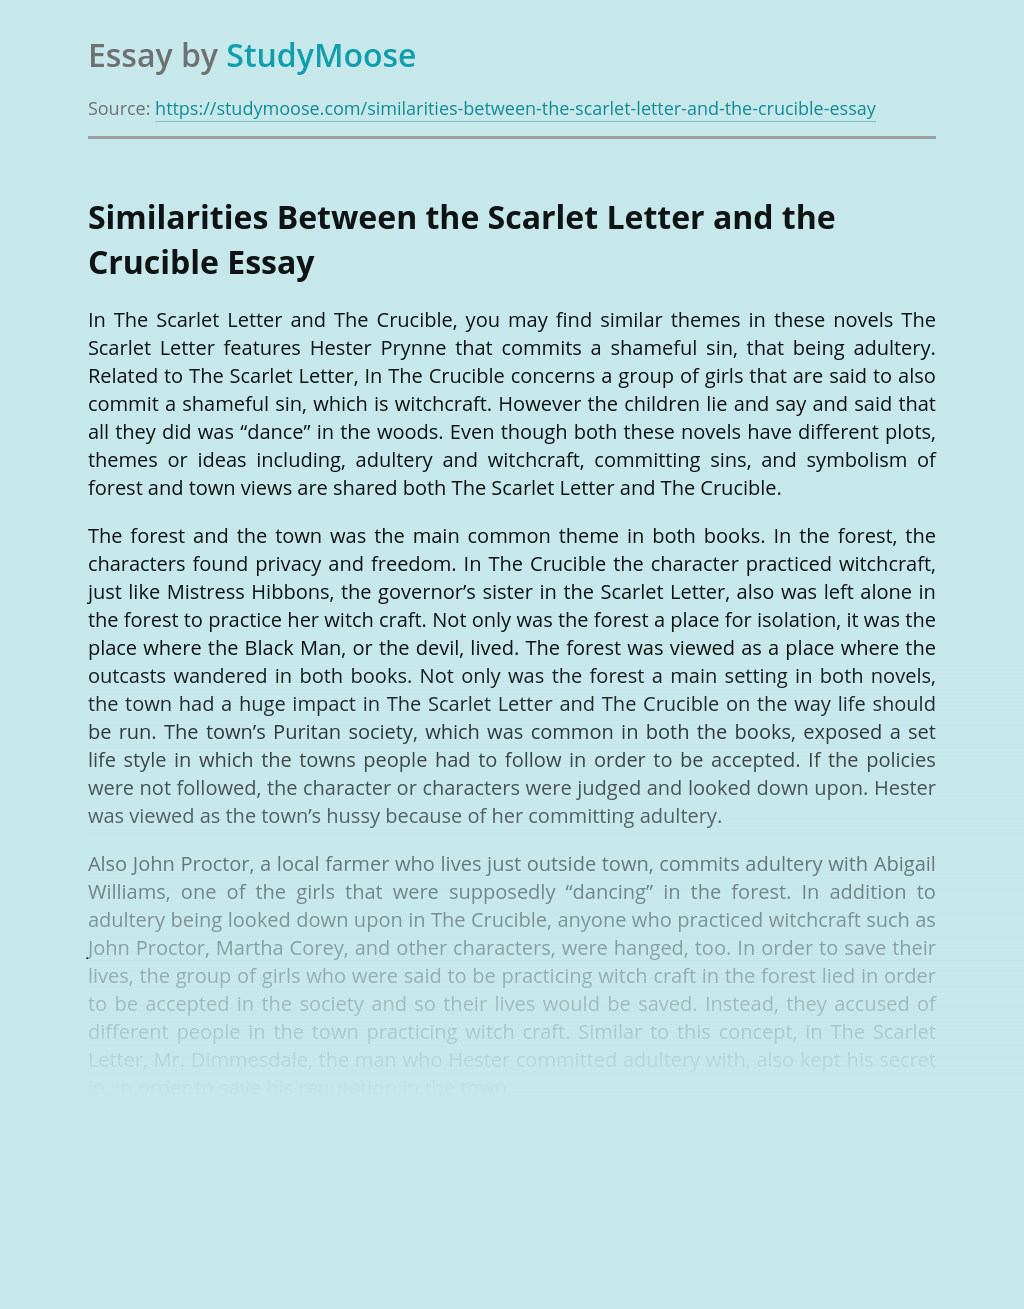 Similarities Between the Scarlet Letter and the Crucible